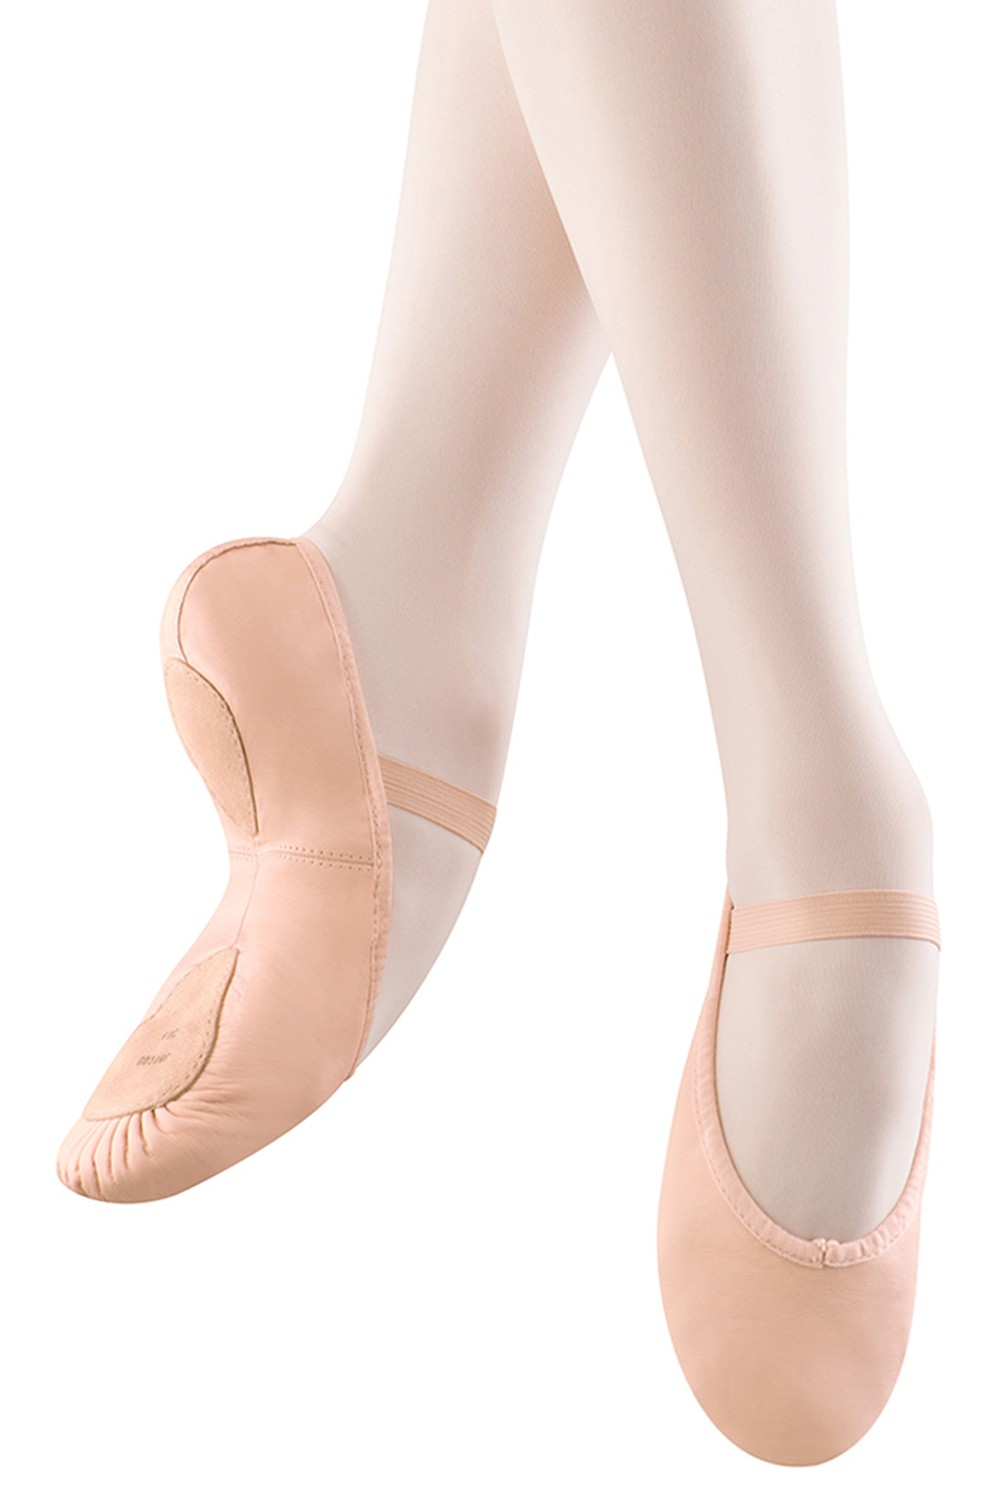 Arise Split Sole - Bambina Girl's Ballet Shoes